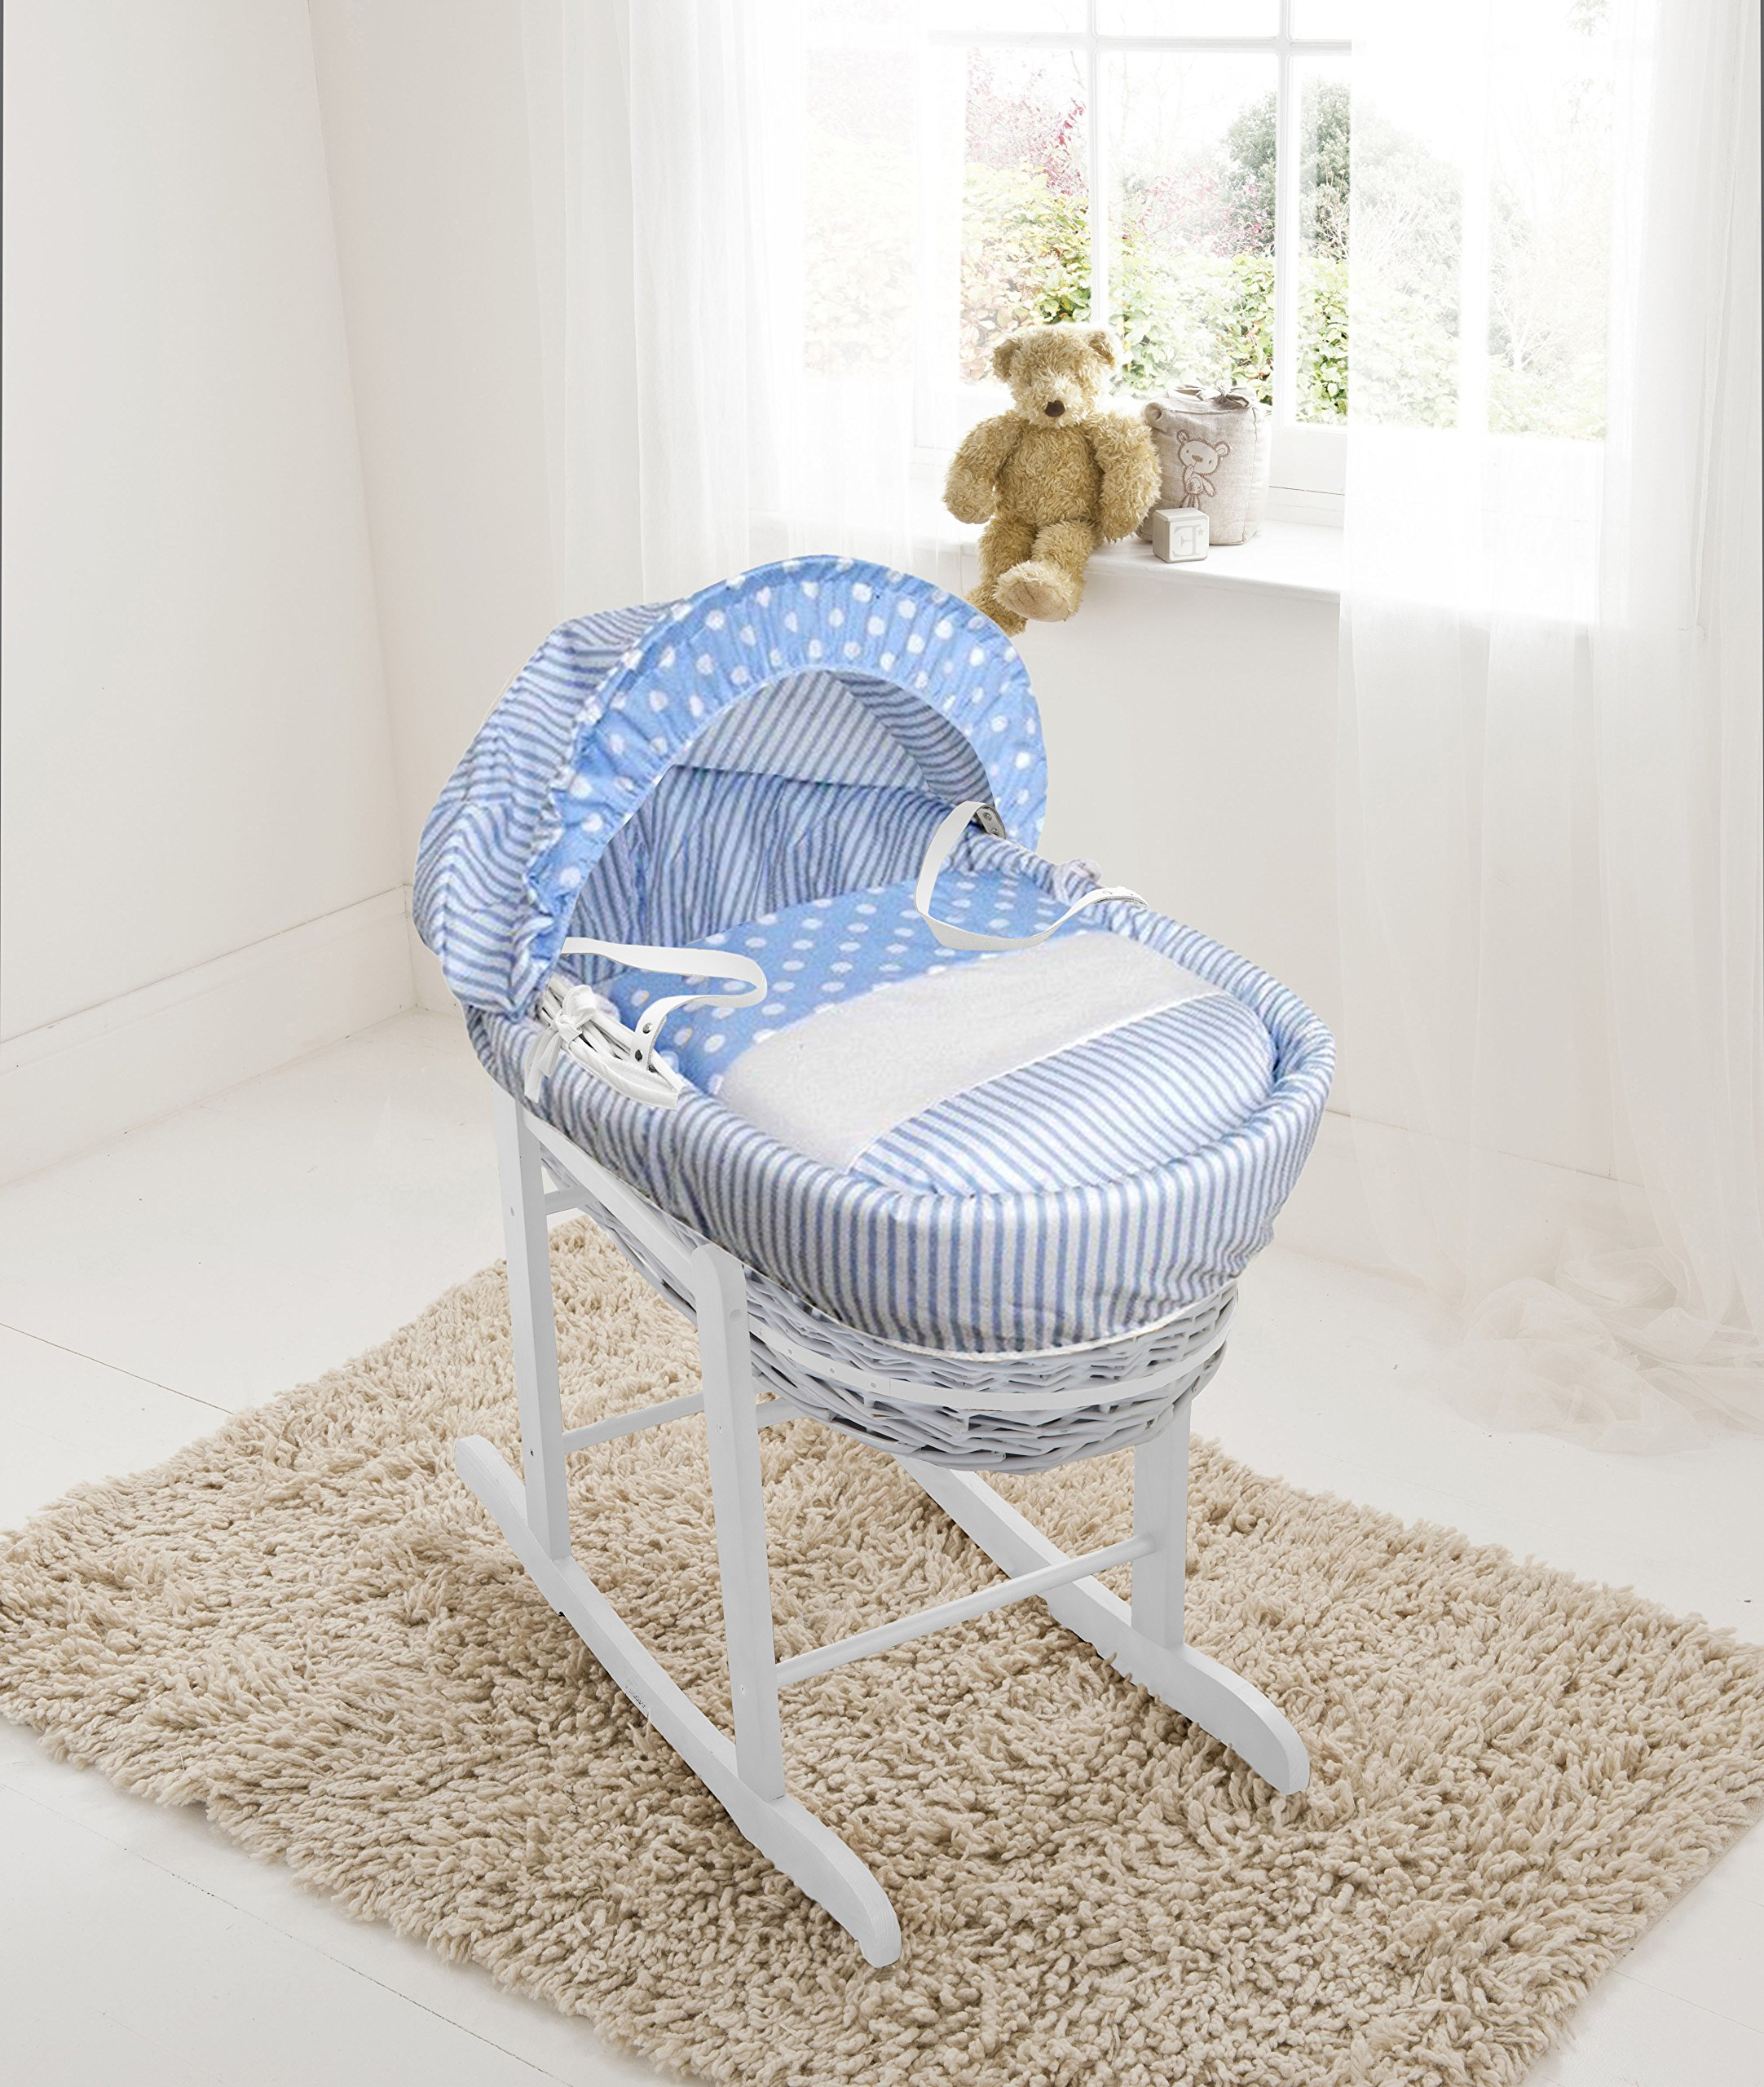 Blue Spots & Stripes White Wicker Moses Basket & Deluxe White Rocking Stand Elegant Baby Suitable from newborn for up to 9kg, this Moses Basket uses Easy-care Poly Cotton with a soft padding surround Suitable from newborn to 9 months It also includes a comfortable mattress and an adjustable hood perfect to create a cosy sleeping space for your precious little one 1